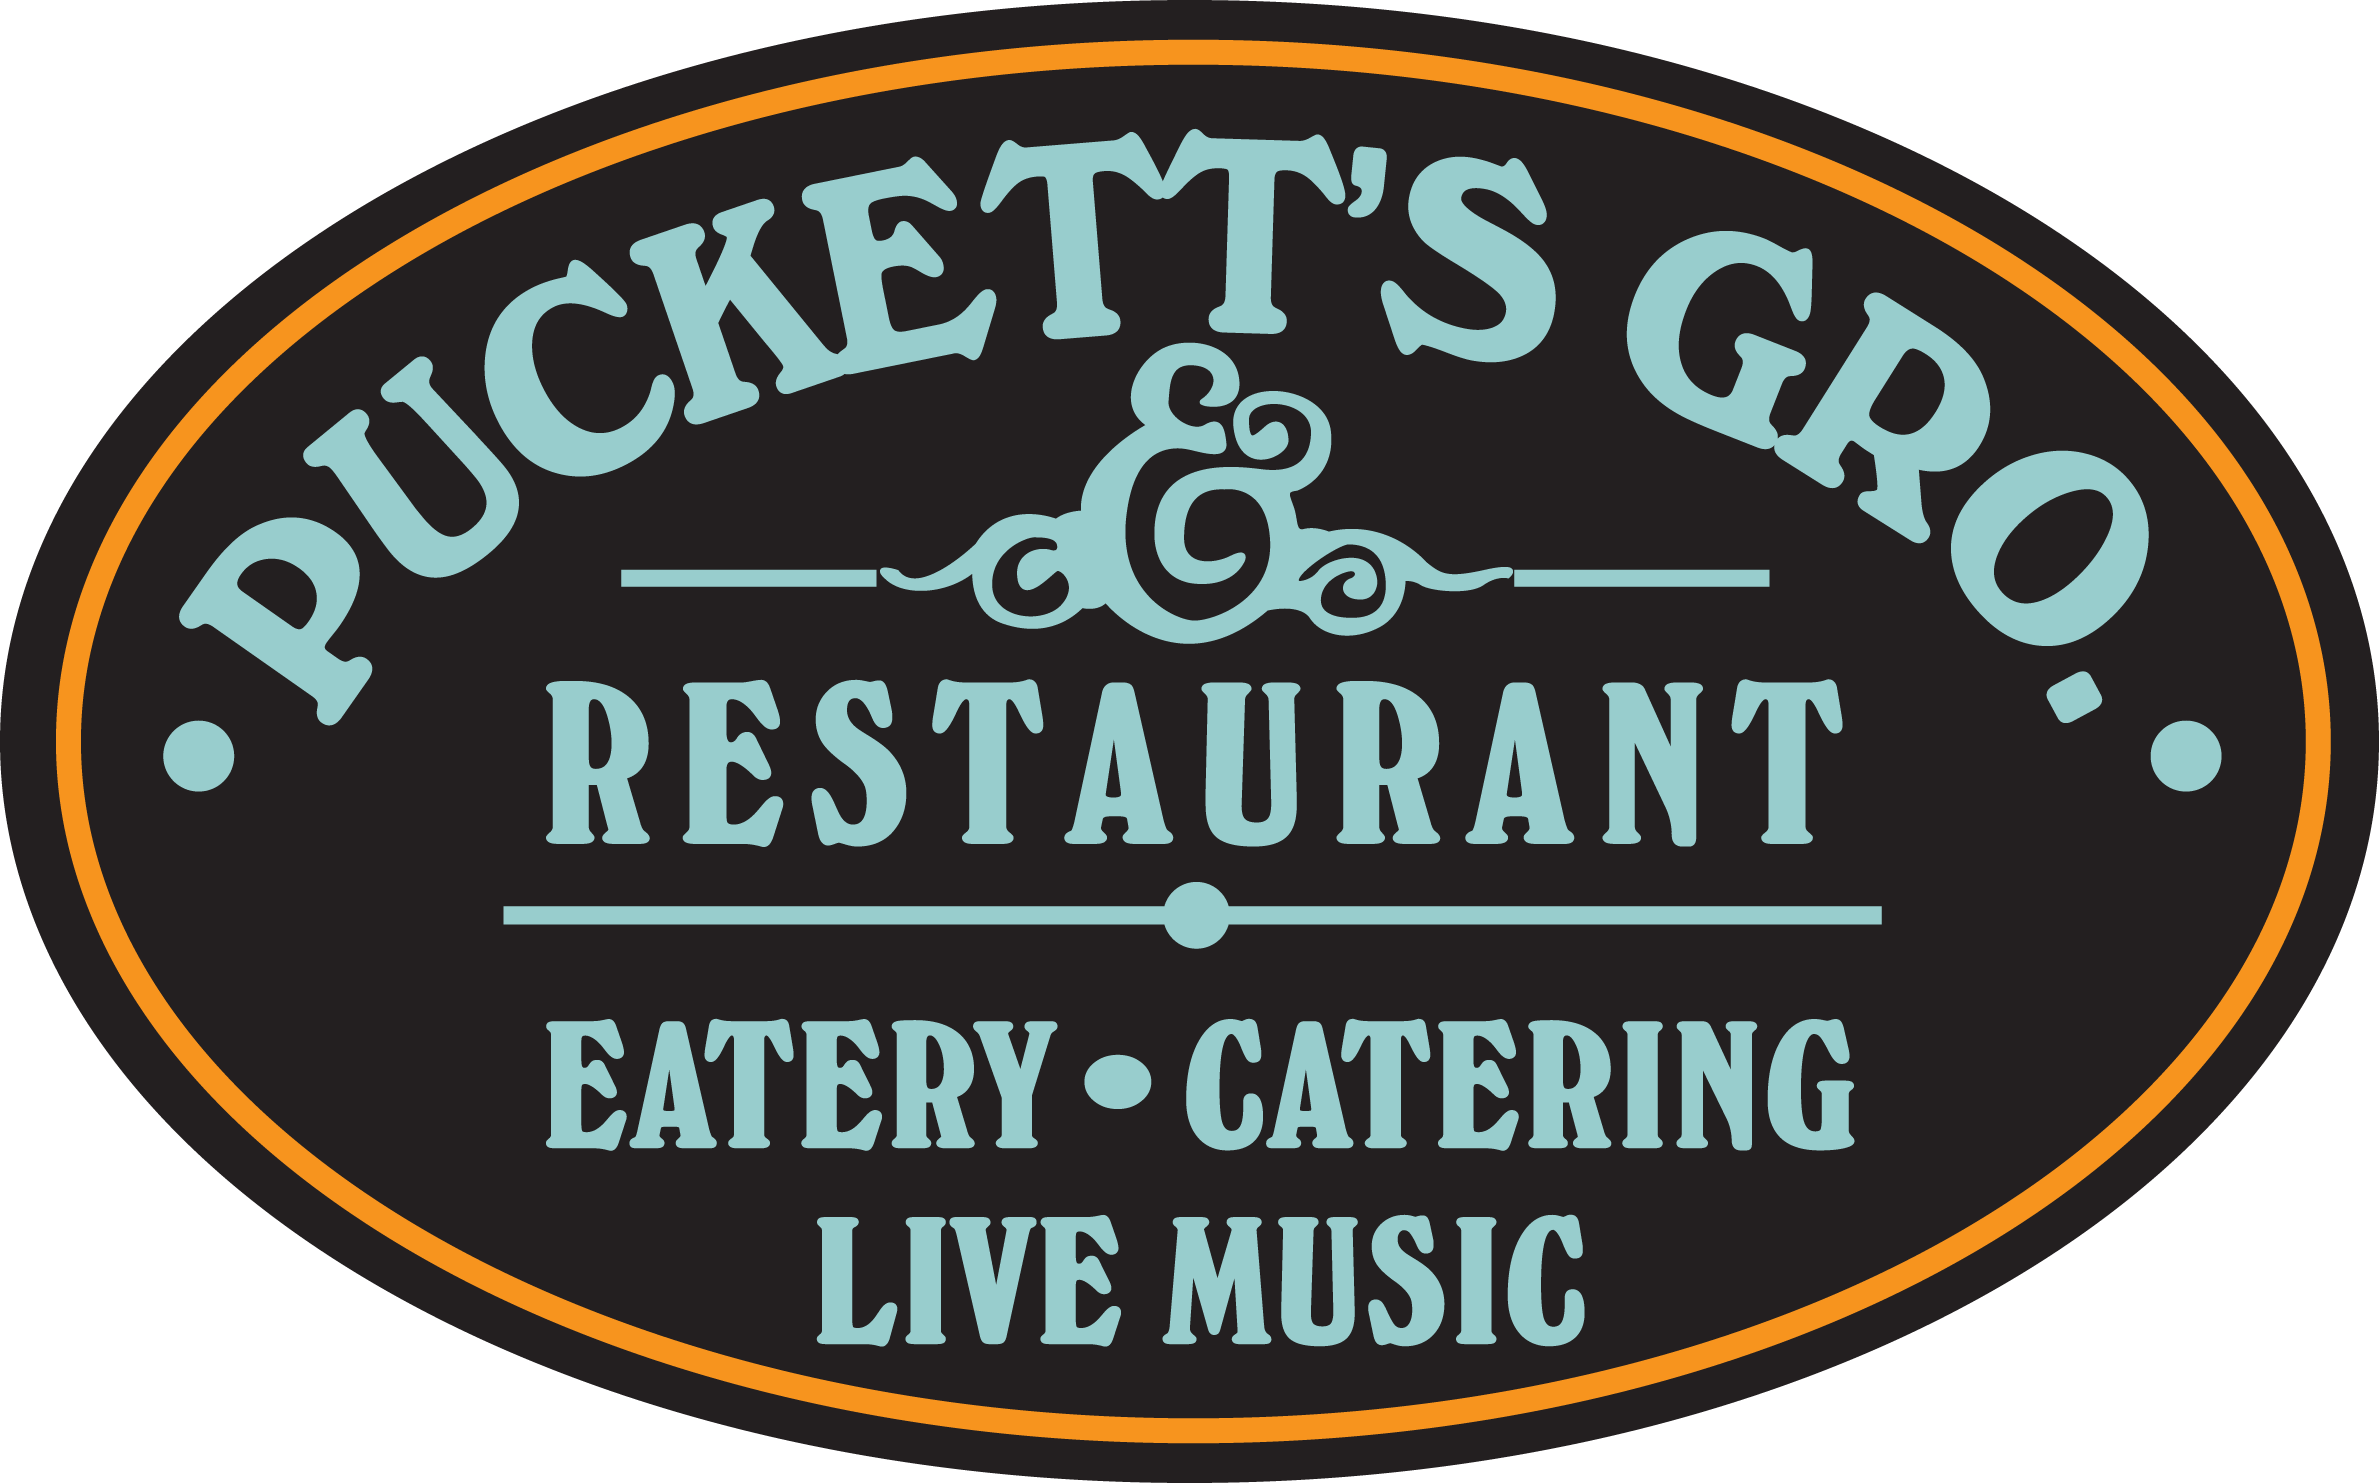 Puckett's Grocery & Restaurant